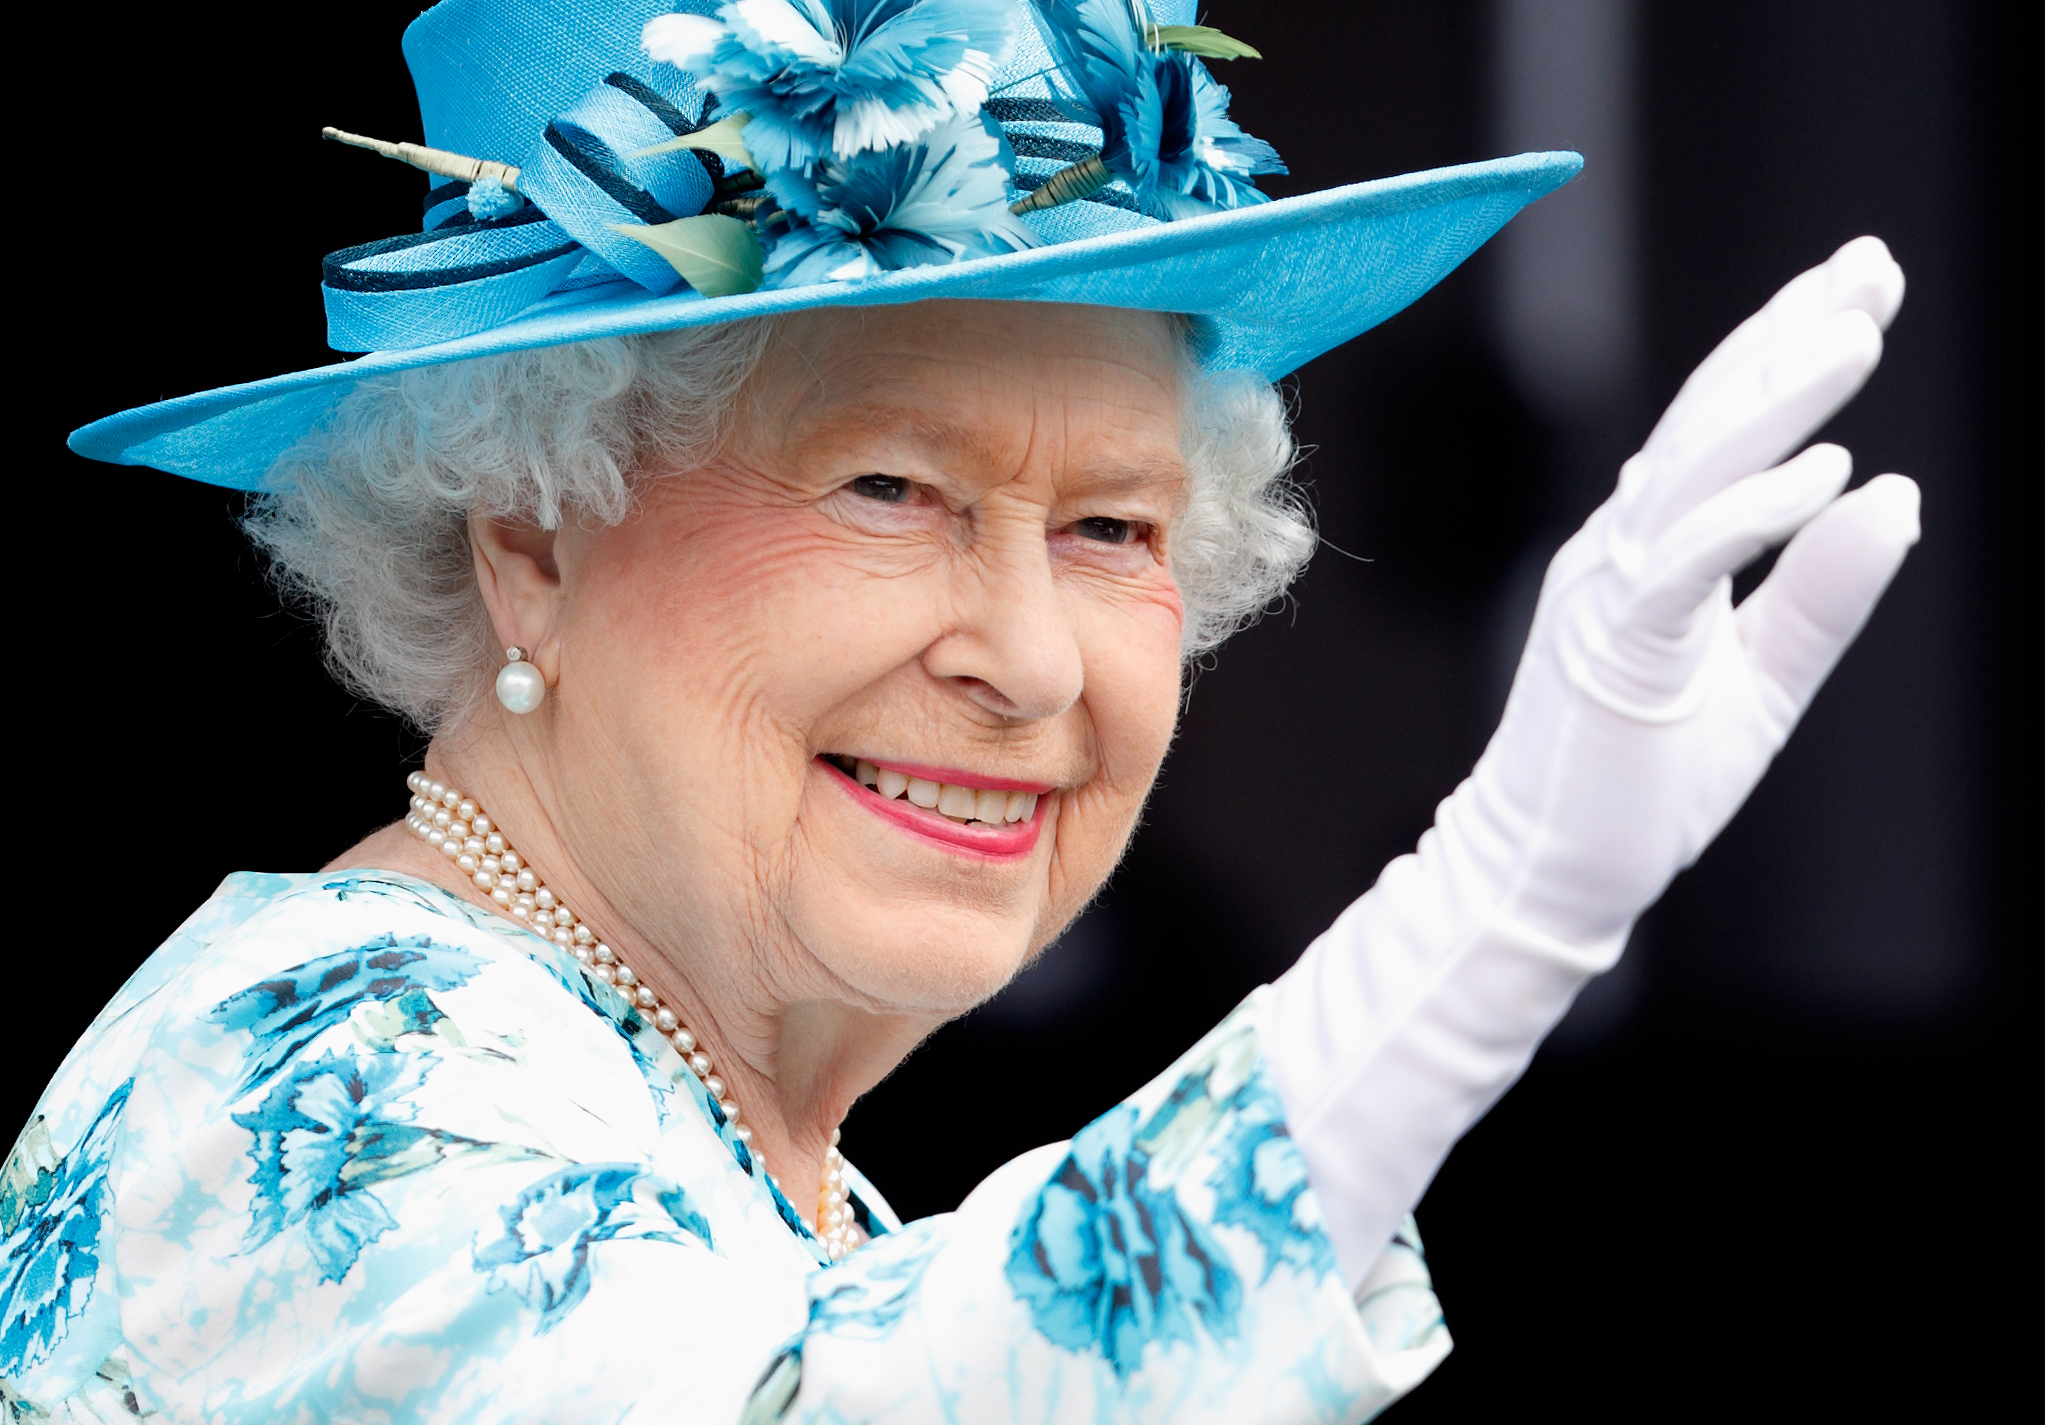 Queen Elizabeth II, the longest reigning sovereign in the United Kingdom.